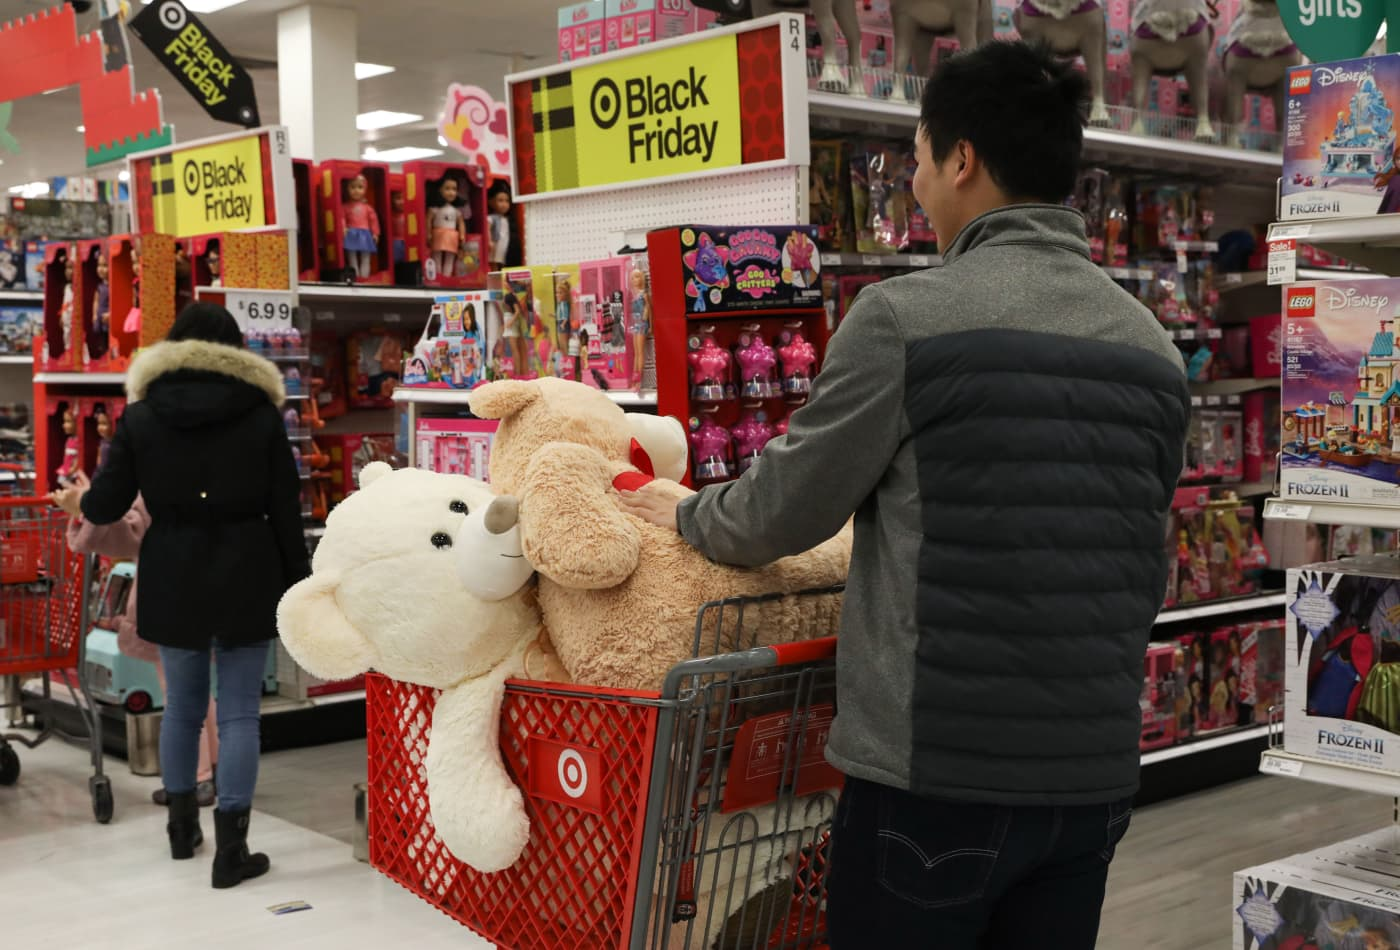 Target shares plunge as holiday sales miss estimates on weakness in toys and electronics